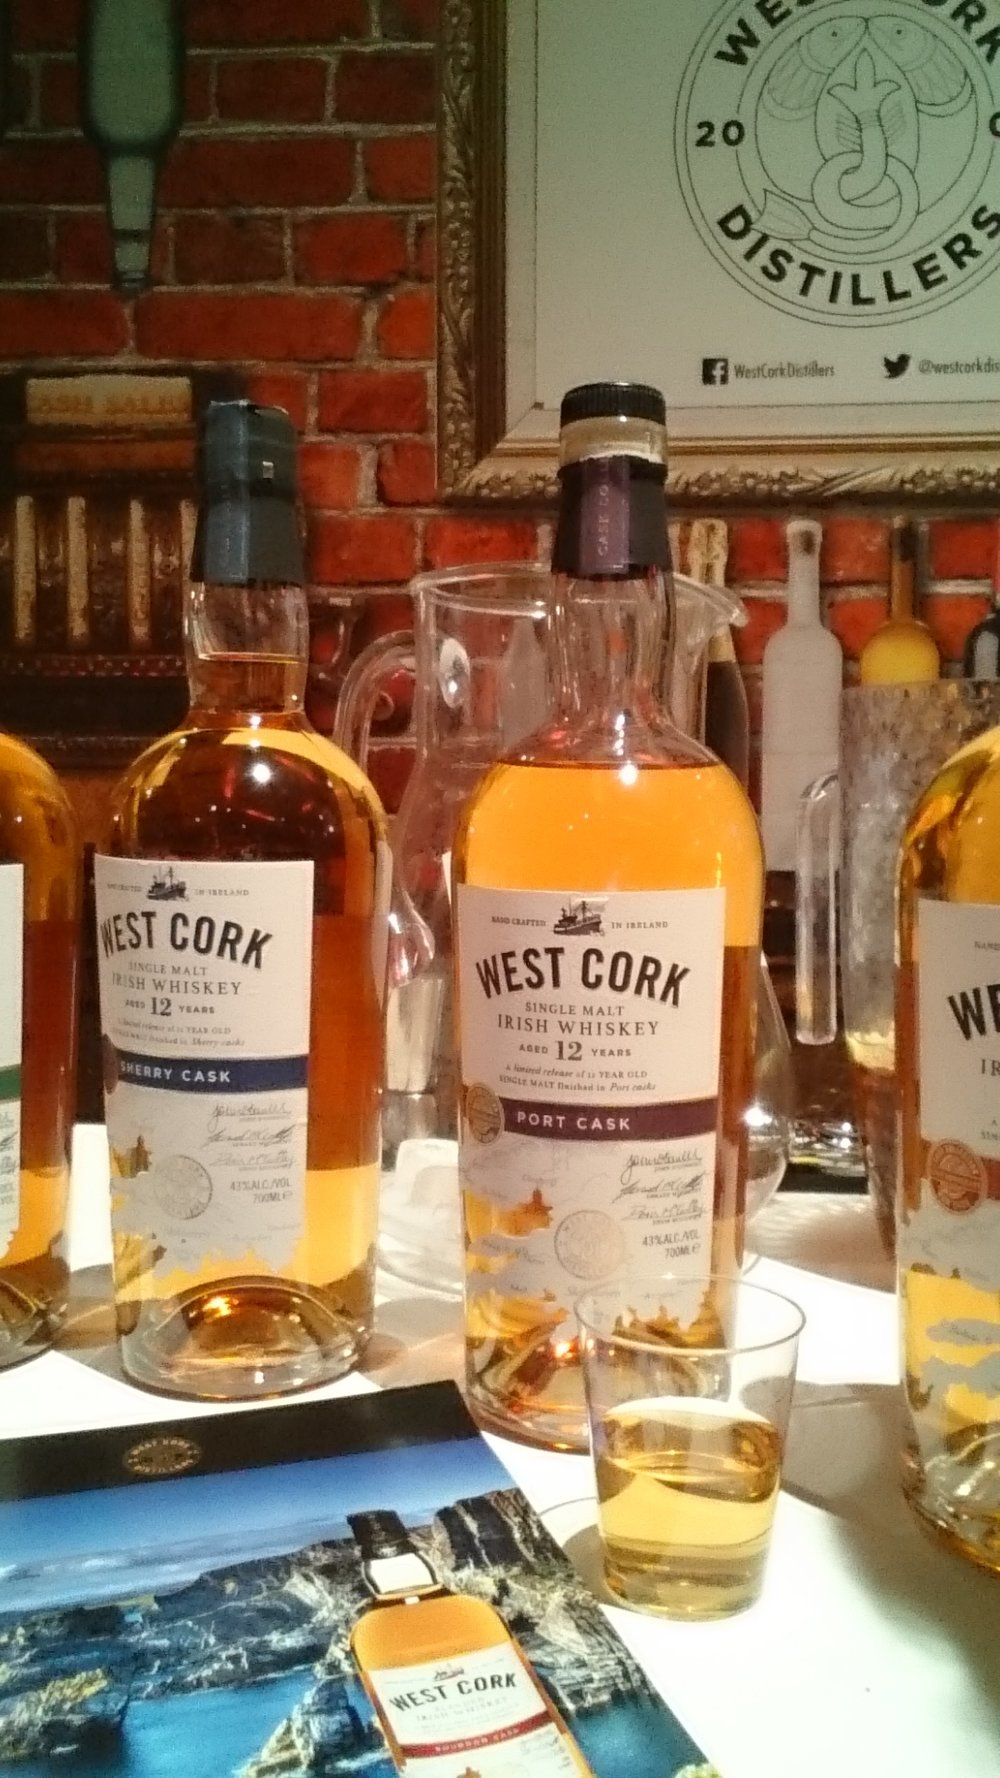 Whiskey being showcased at the event too. I tried the port cask by West Cork.